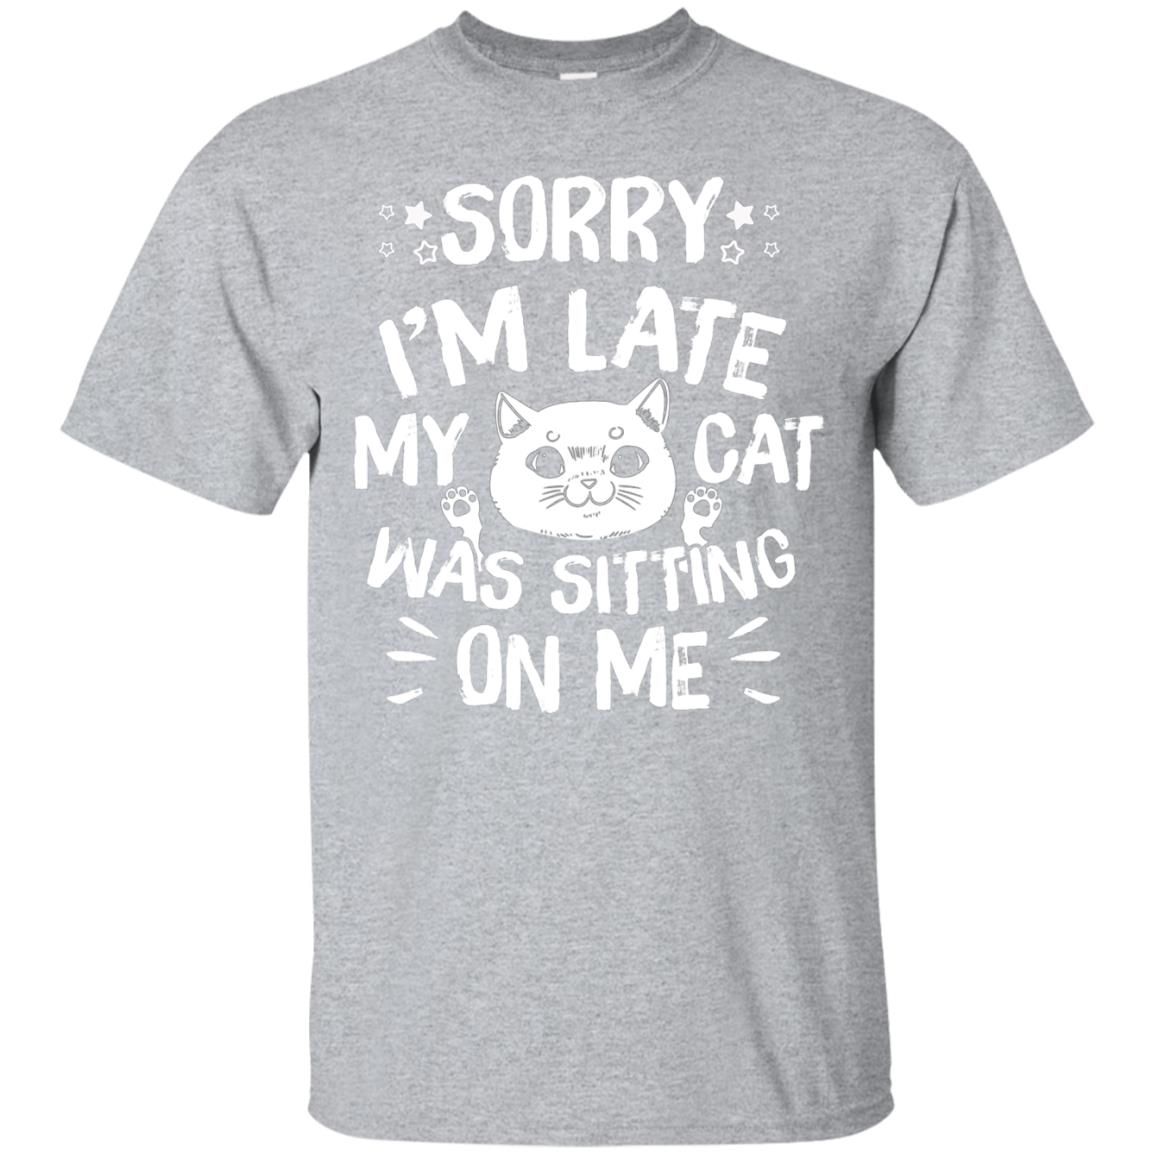 Cat T-shirt for Woman Sorry Im Late My Cat Was Sitting on Me 99promocode